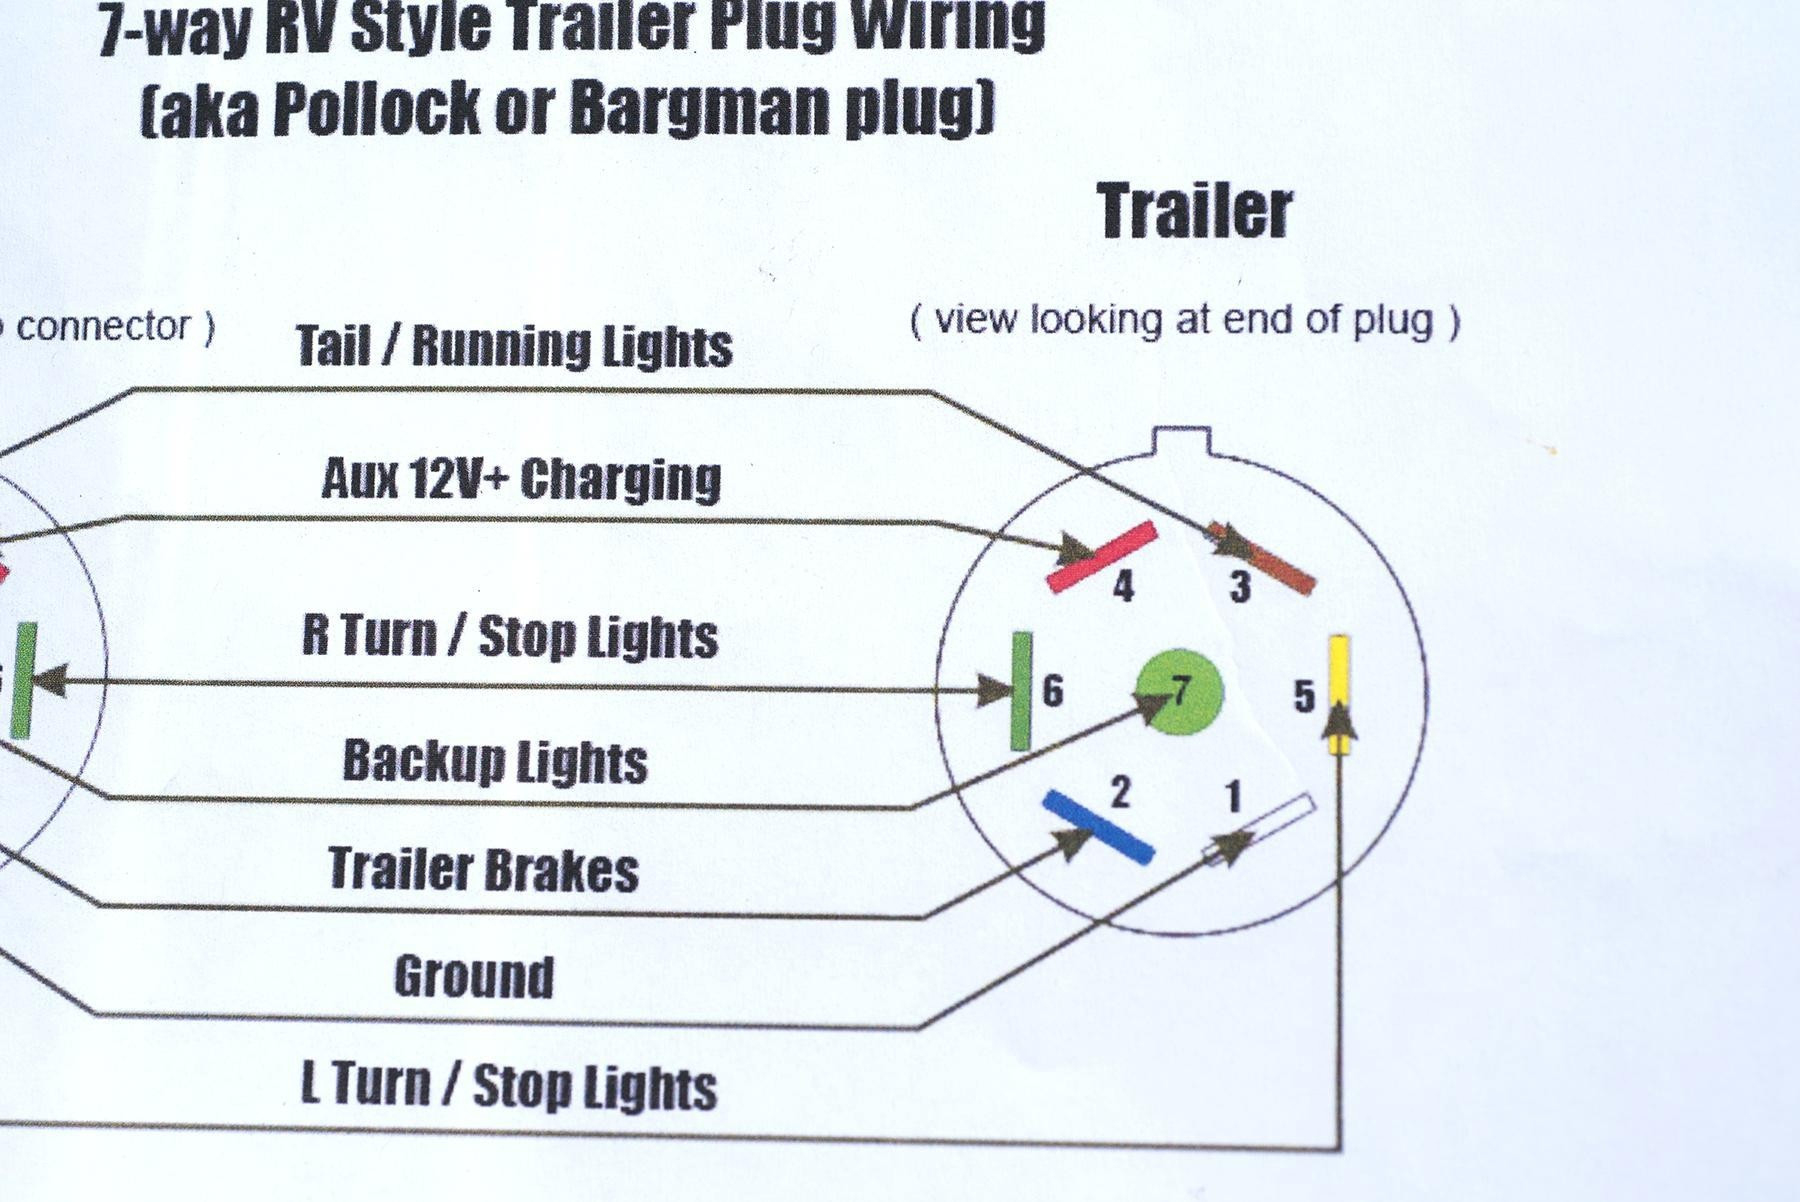 Trailer 7 Way Trailer Plug Wiring Diagram - Wiring Diagrams Hubs - Wiring A 7 Way Trailer Connector Diagram